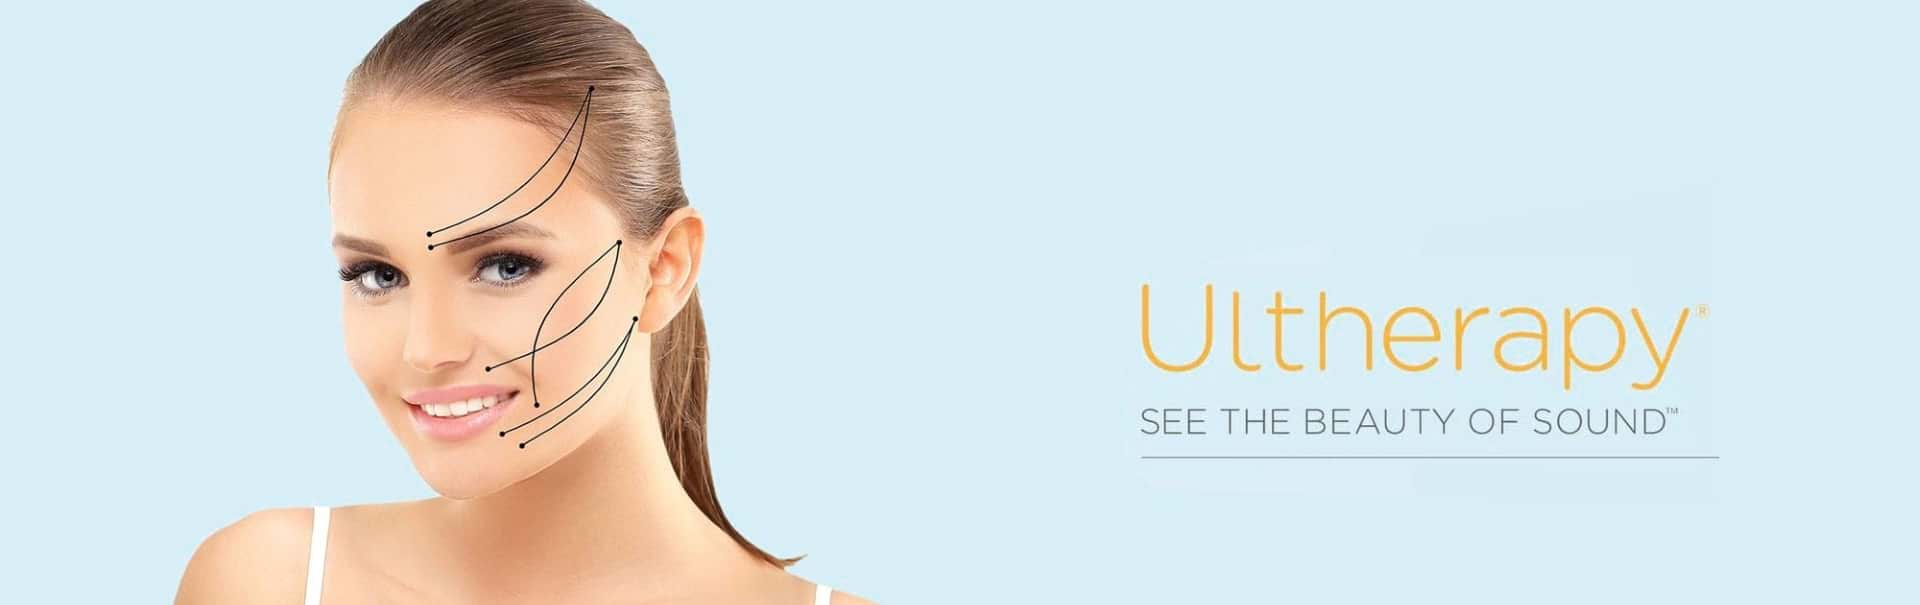 Ultherapy Banner